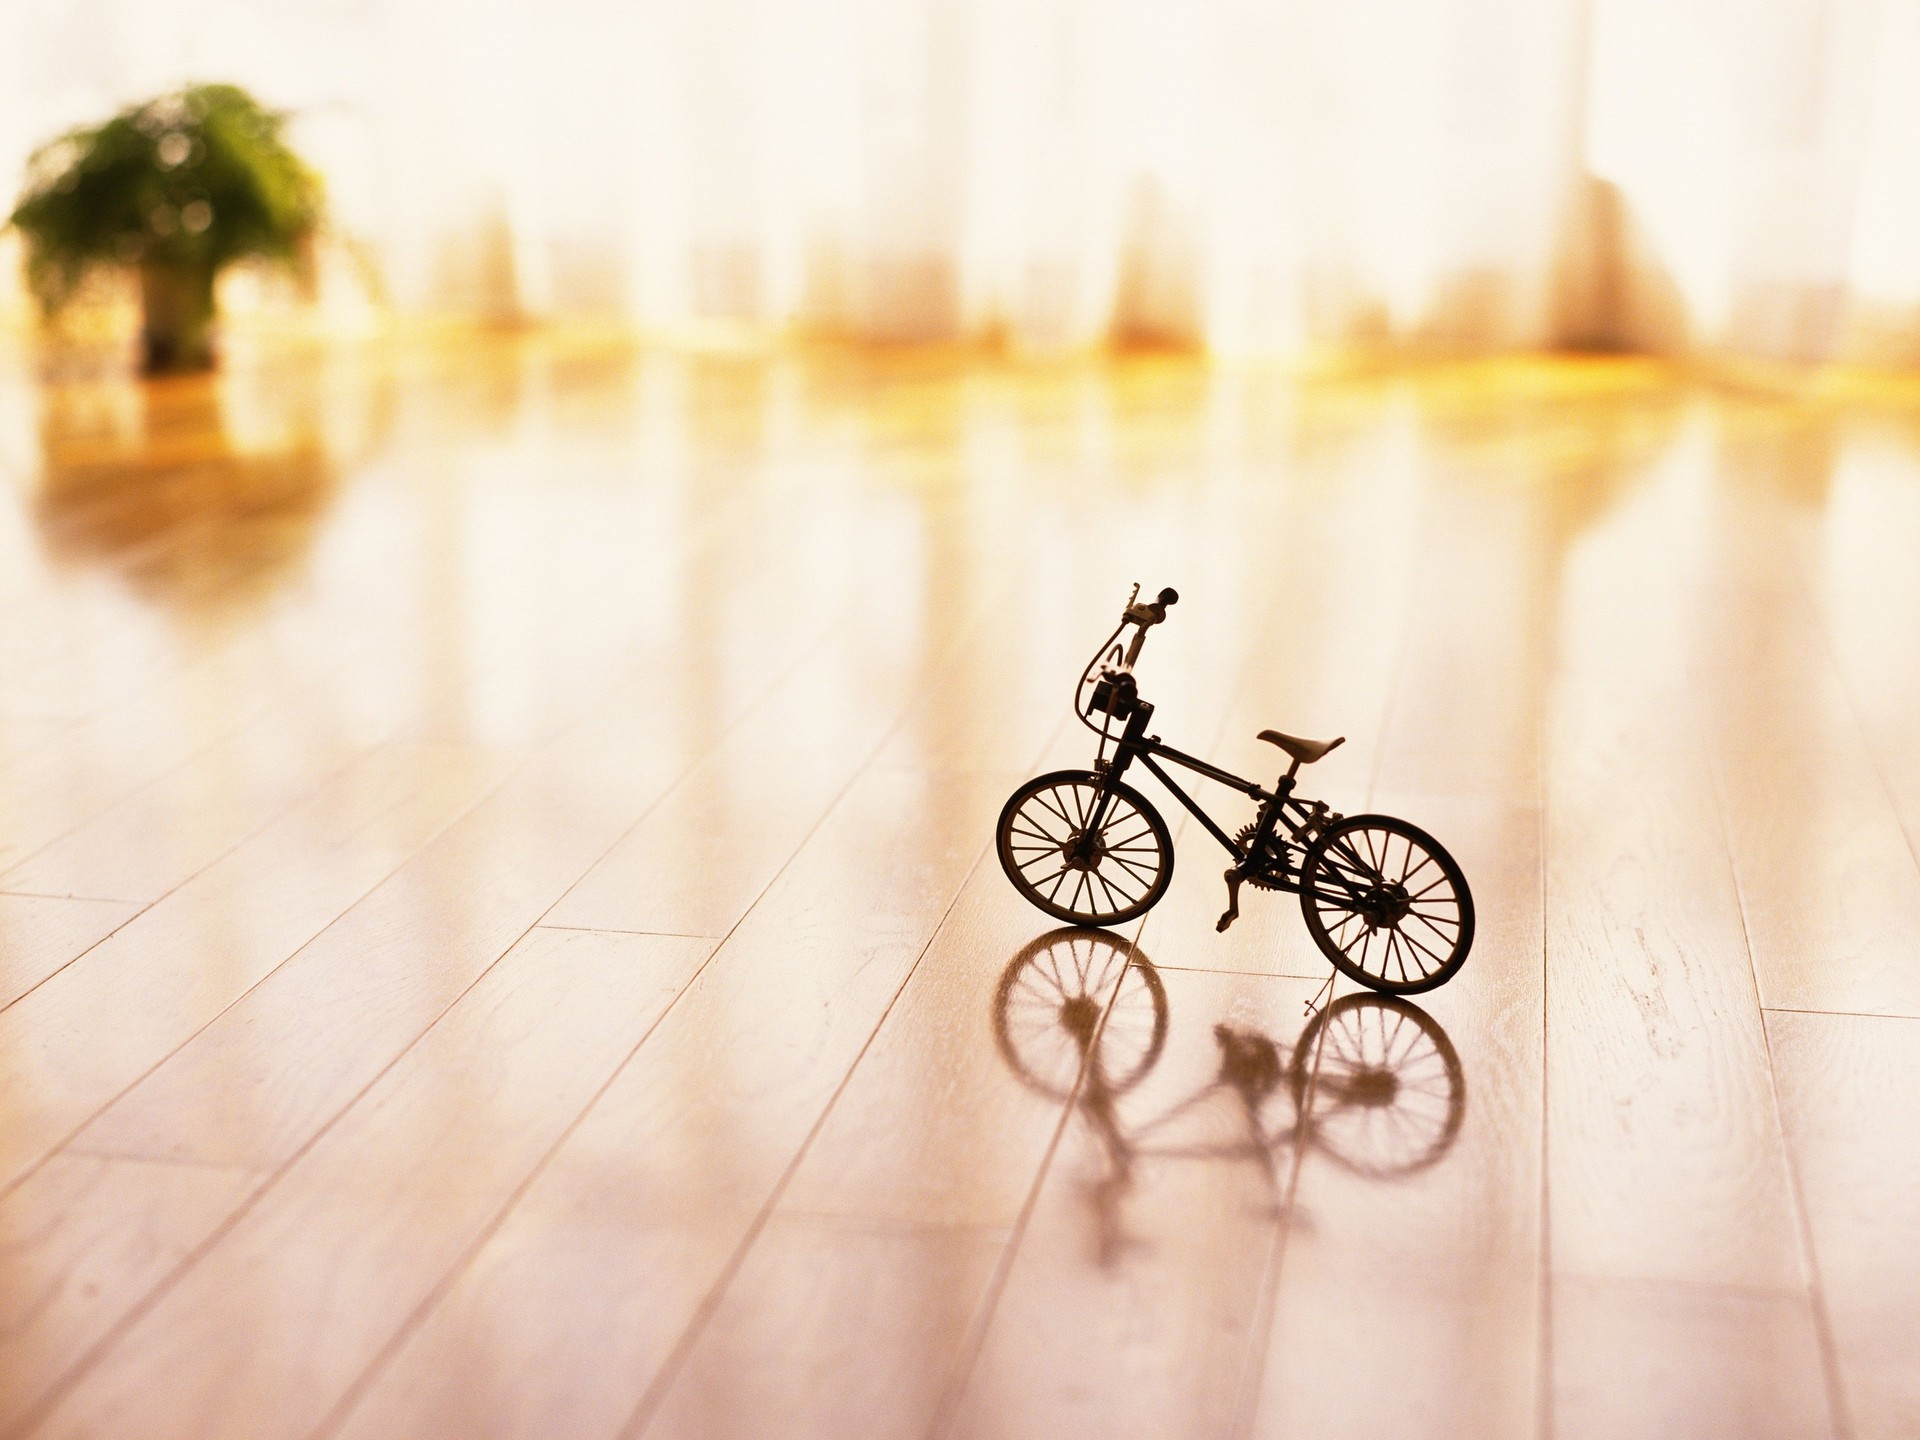 Toy Bicycle Wallpaper 46132 1920x1440 px HDWallSourcecom